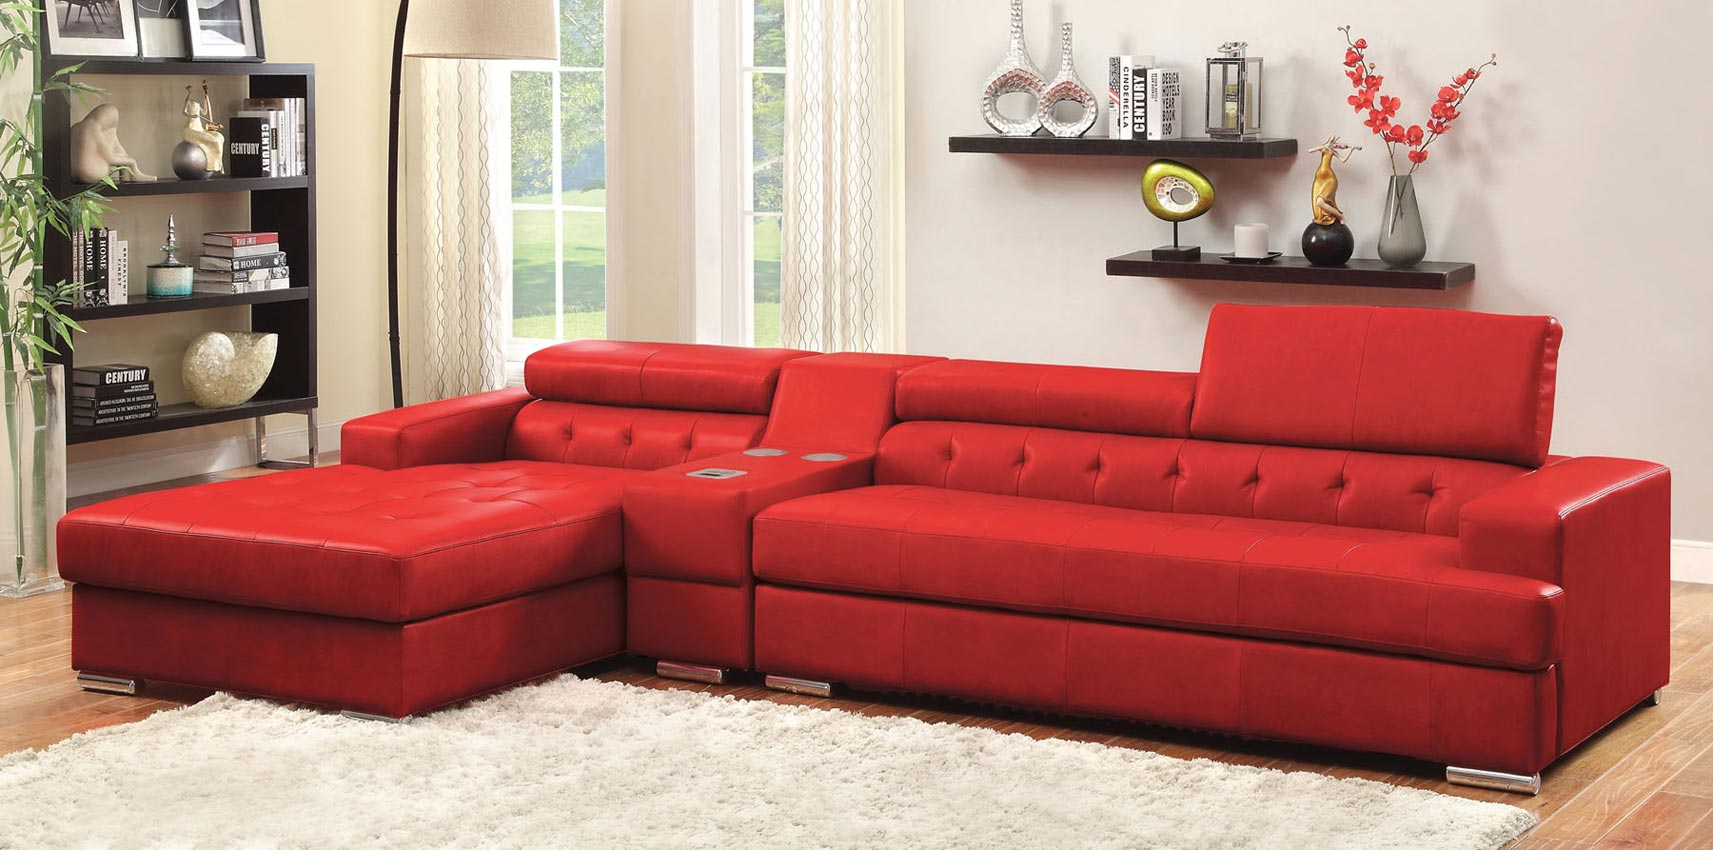 3 pcs red leather sofa set with console